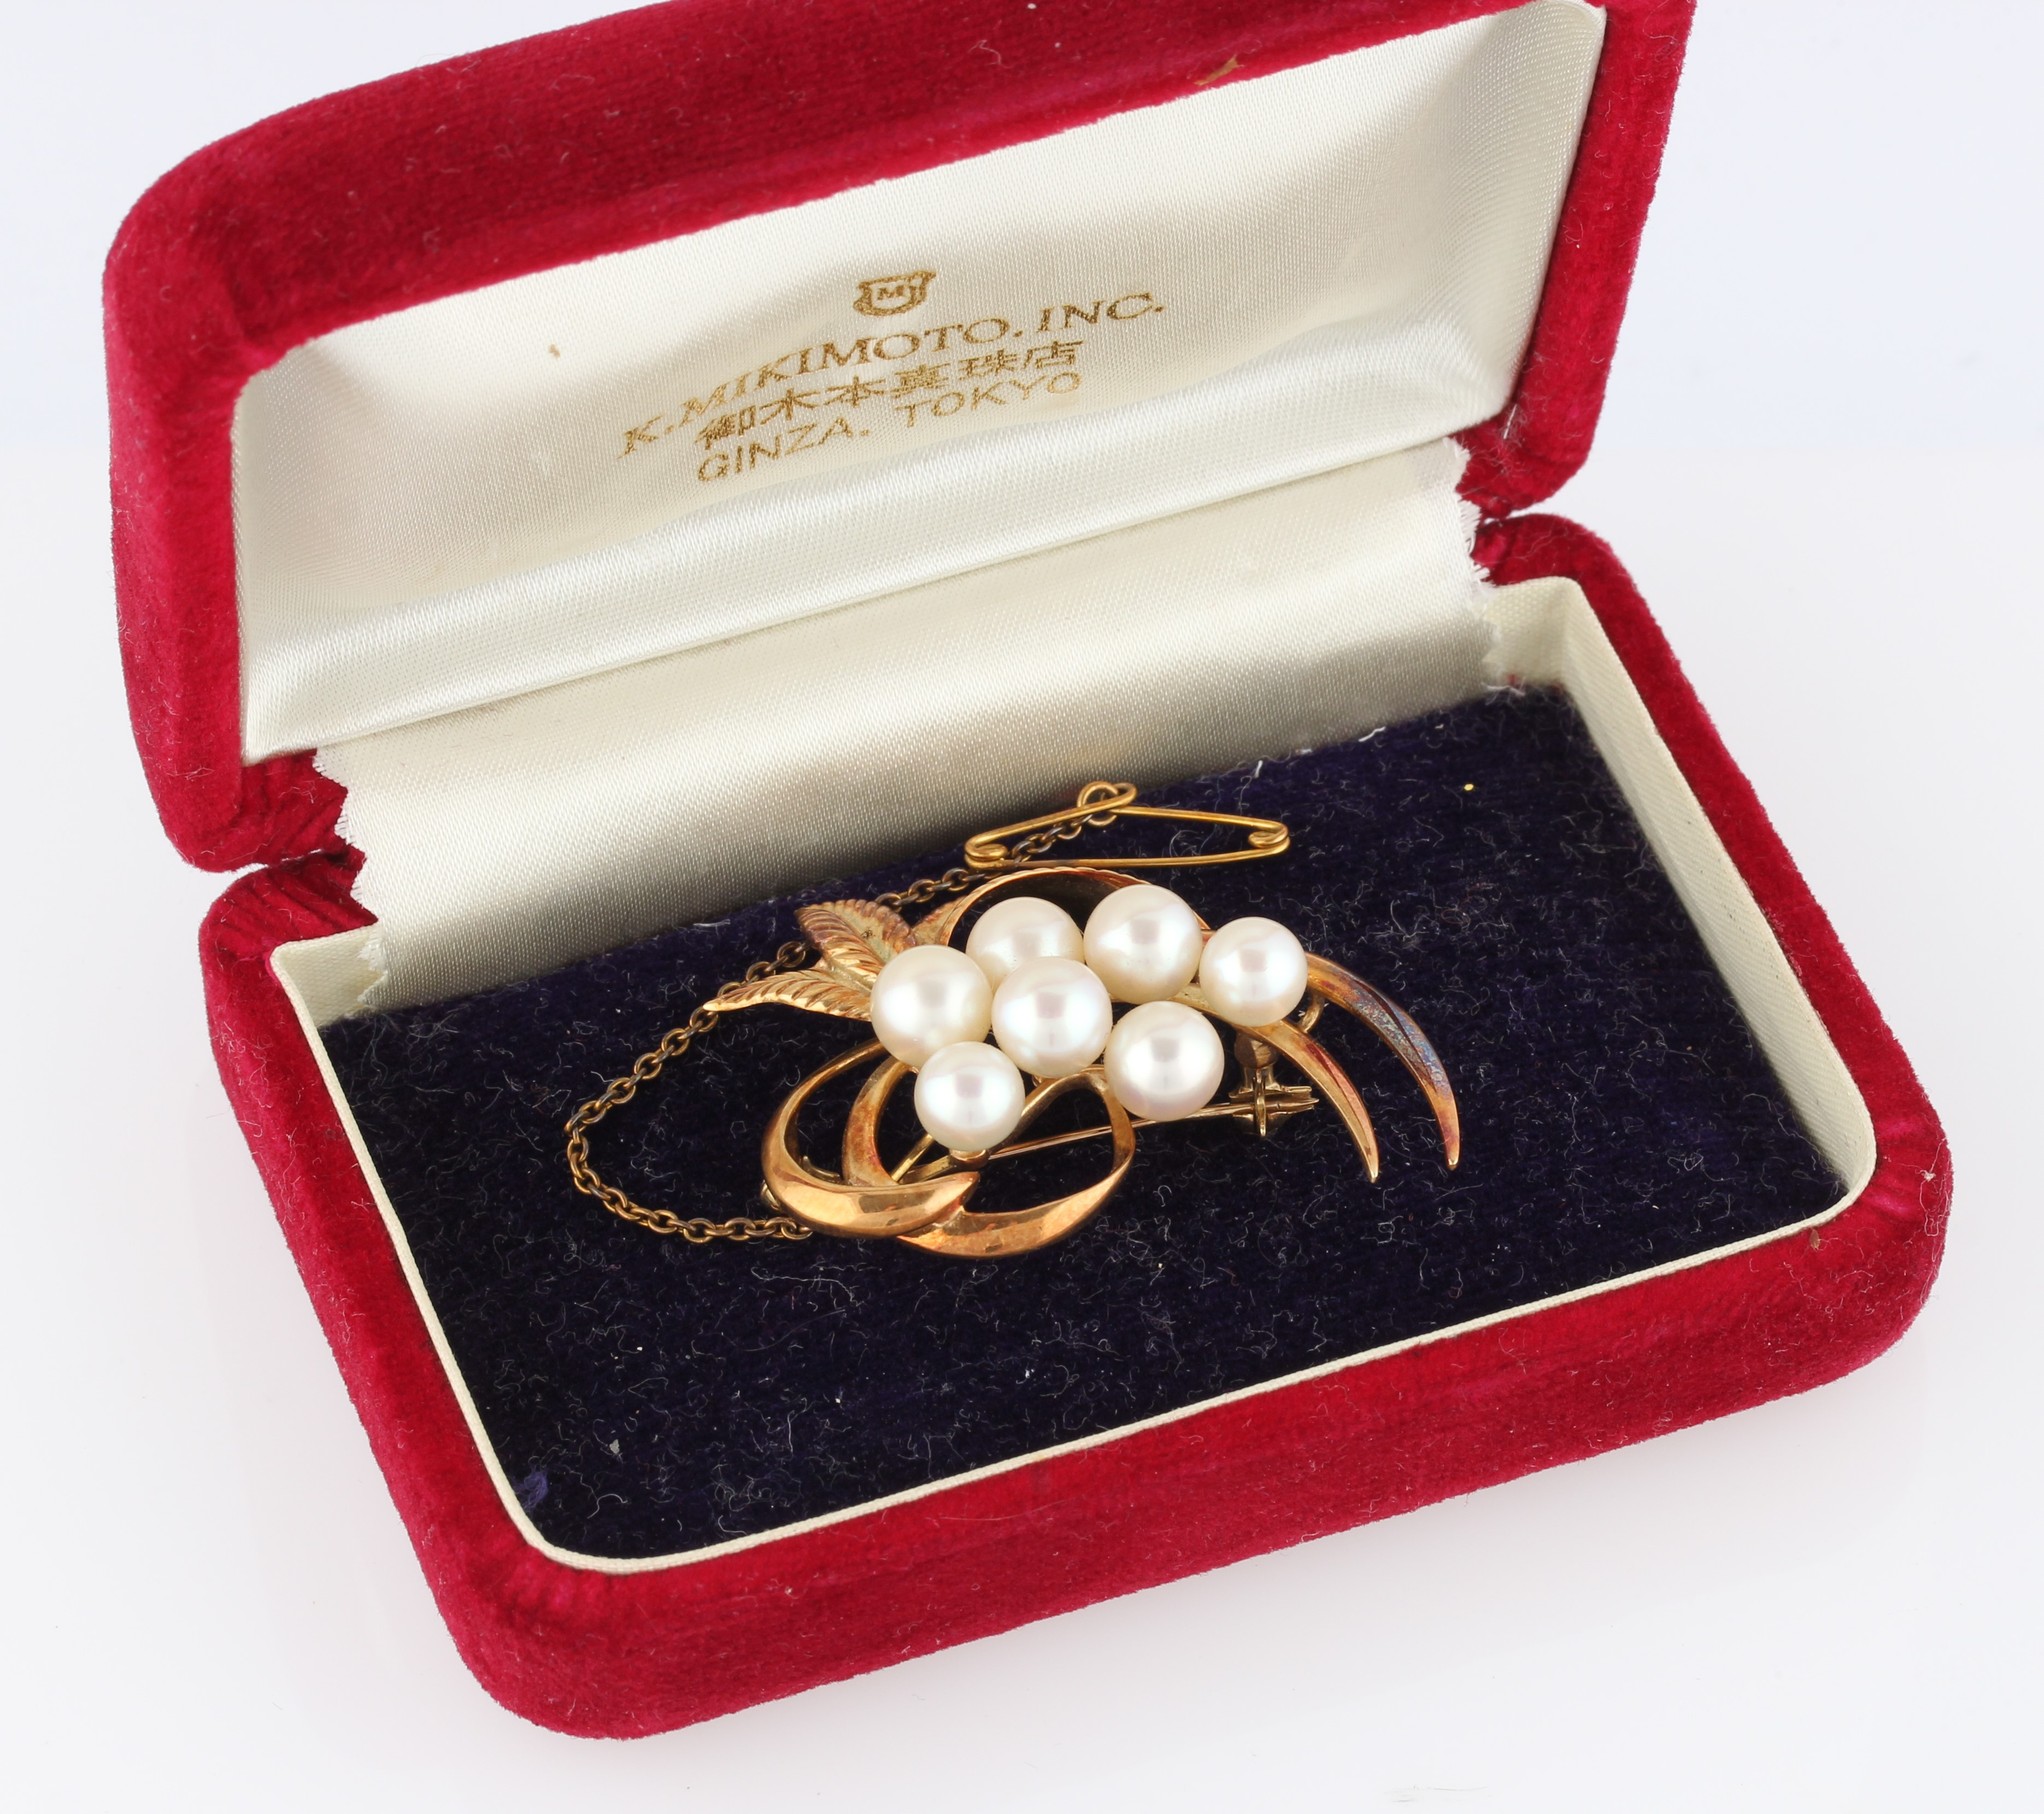 Lot 22 - A Mikimoto pearl brooch, set with seven variously sized pearls, smallest measuring approx. 6mm and